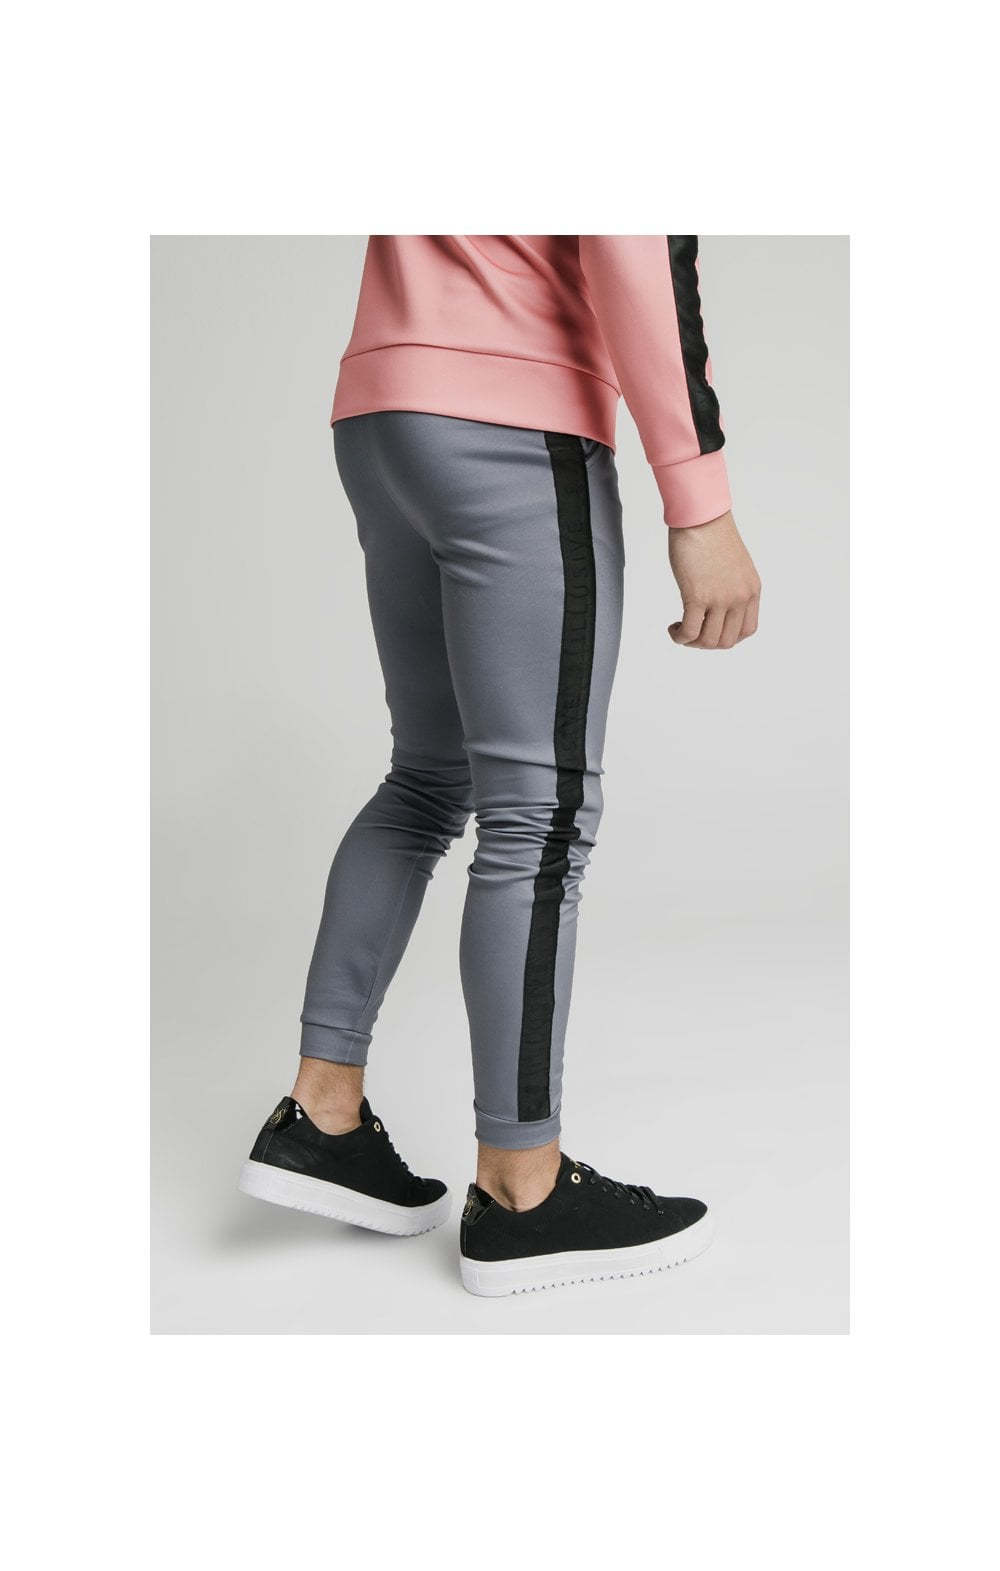 Illusive London Athlete Pants - Grey (1)